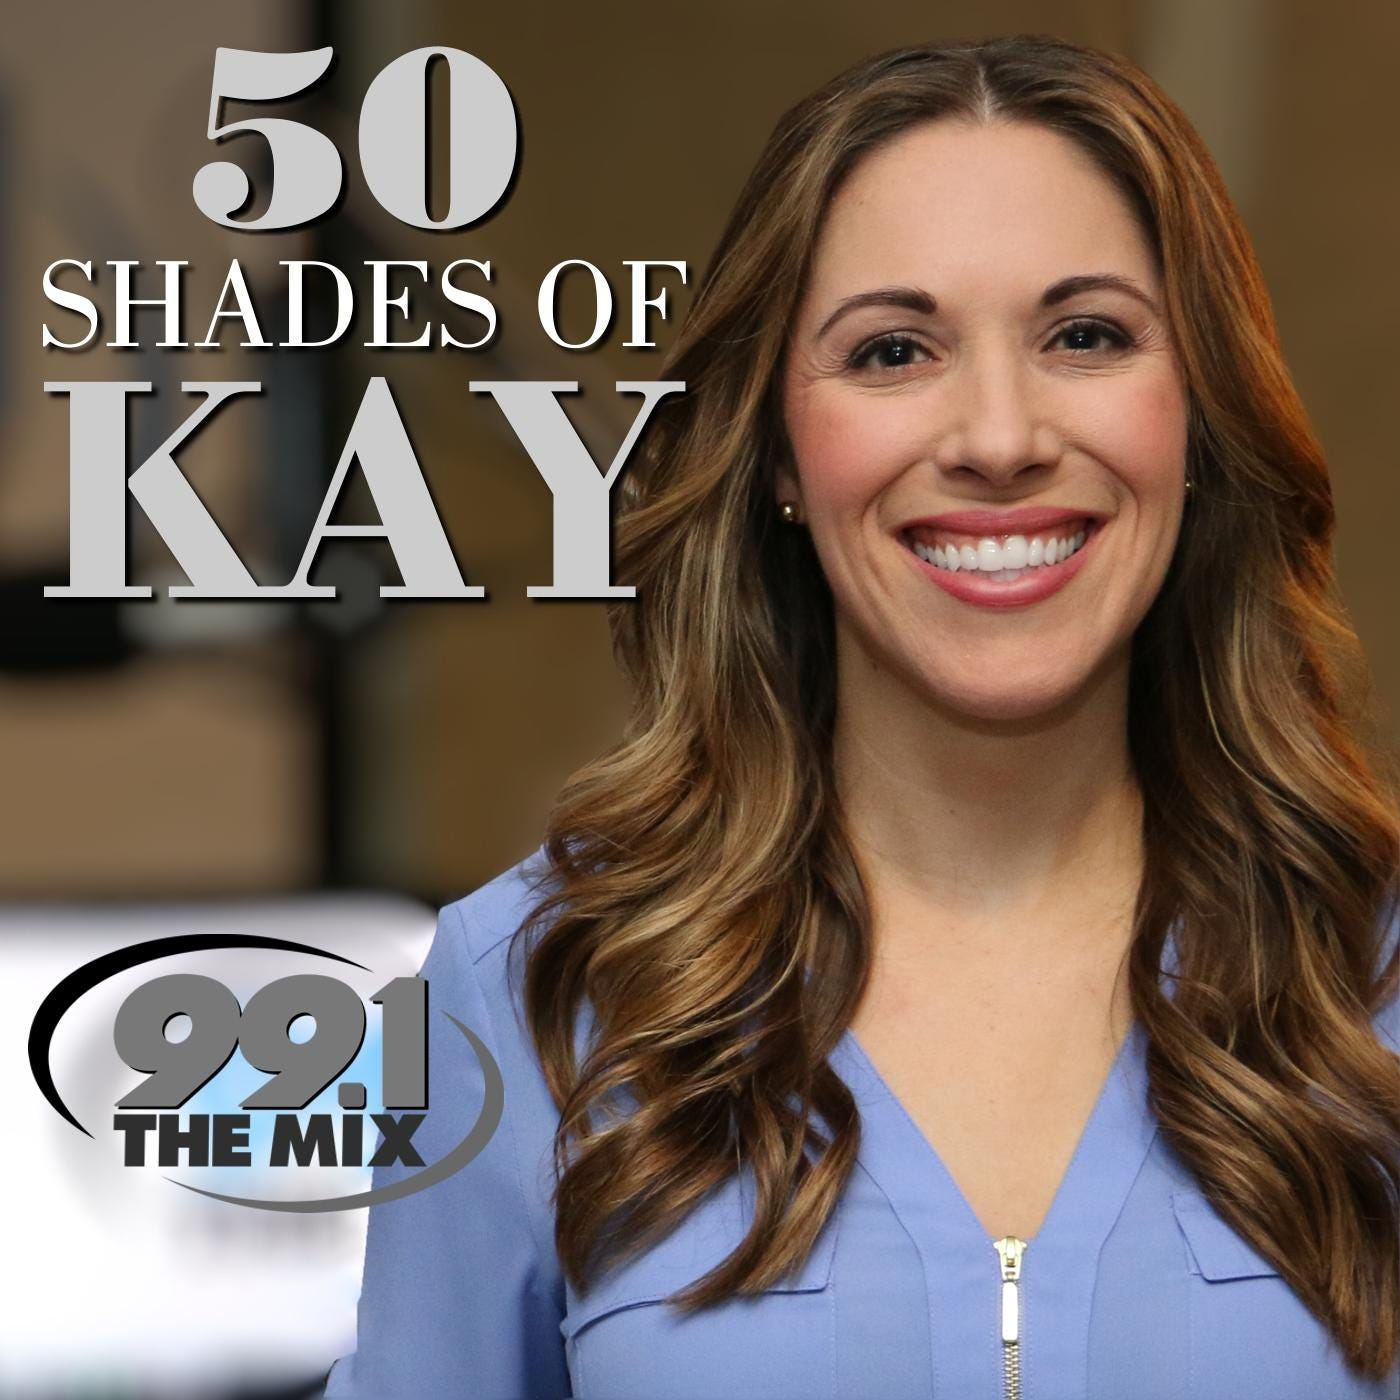 50 Shades of Kay